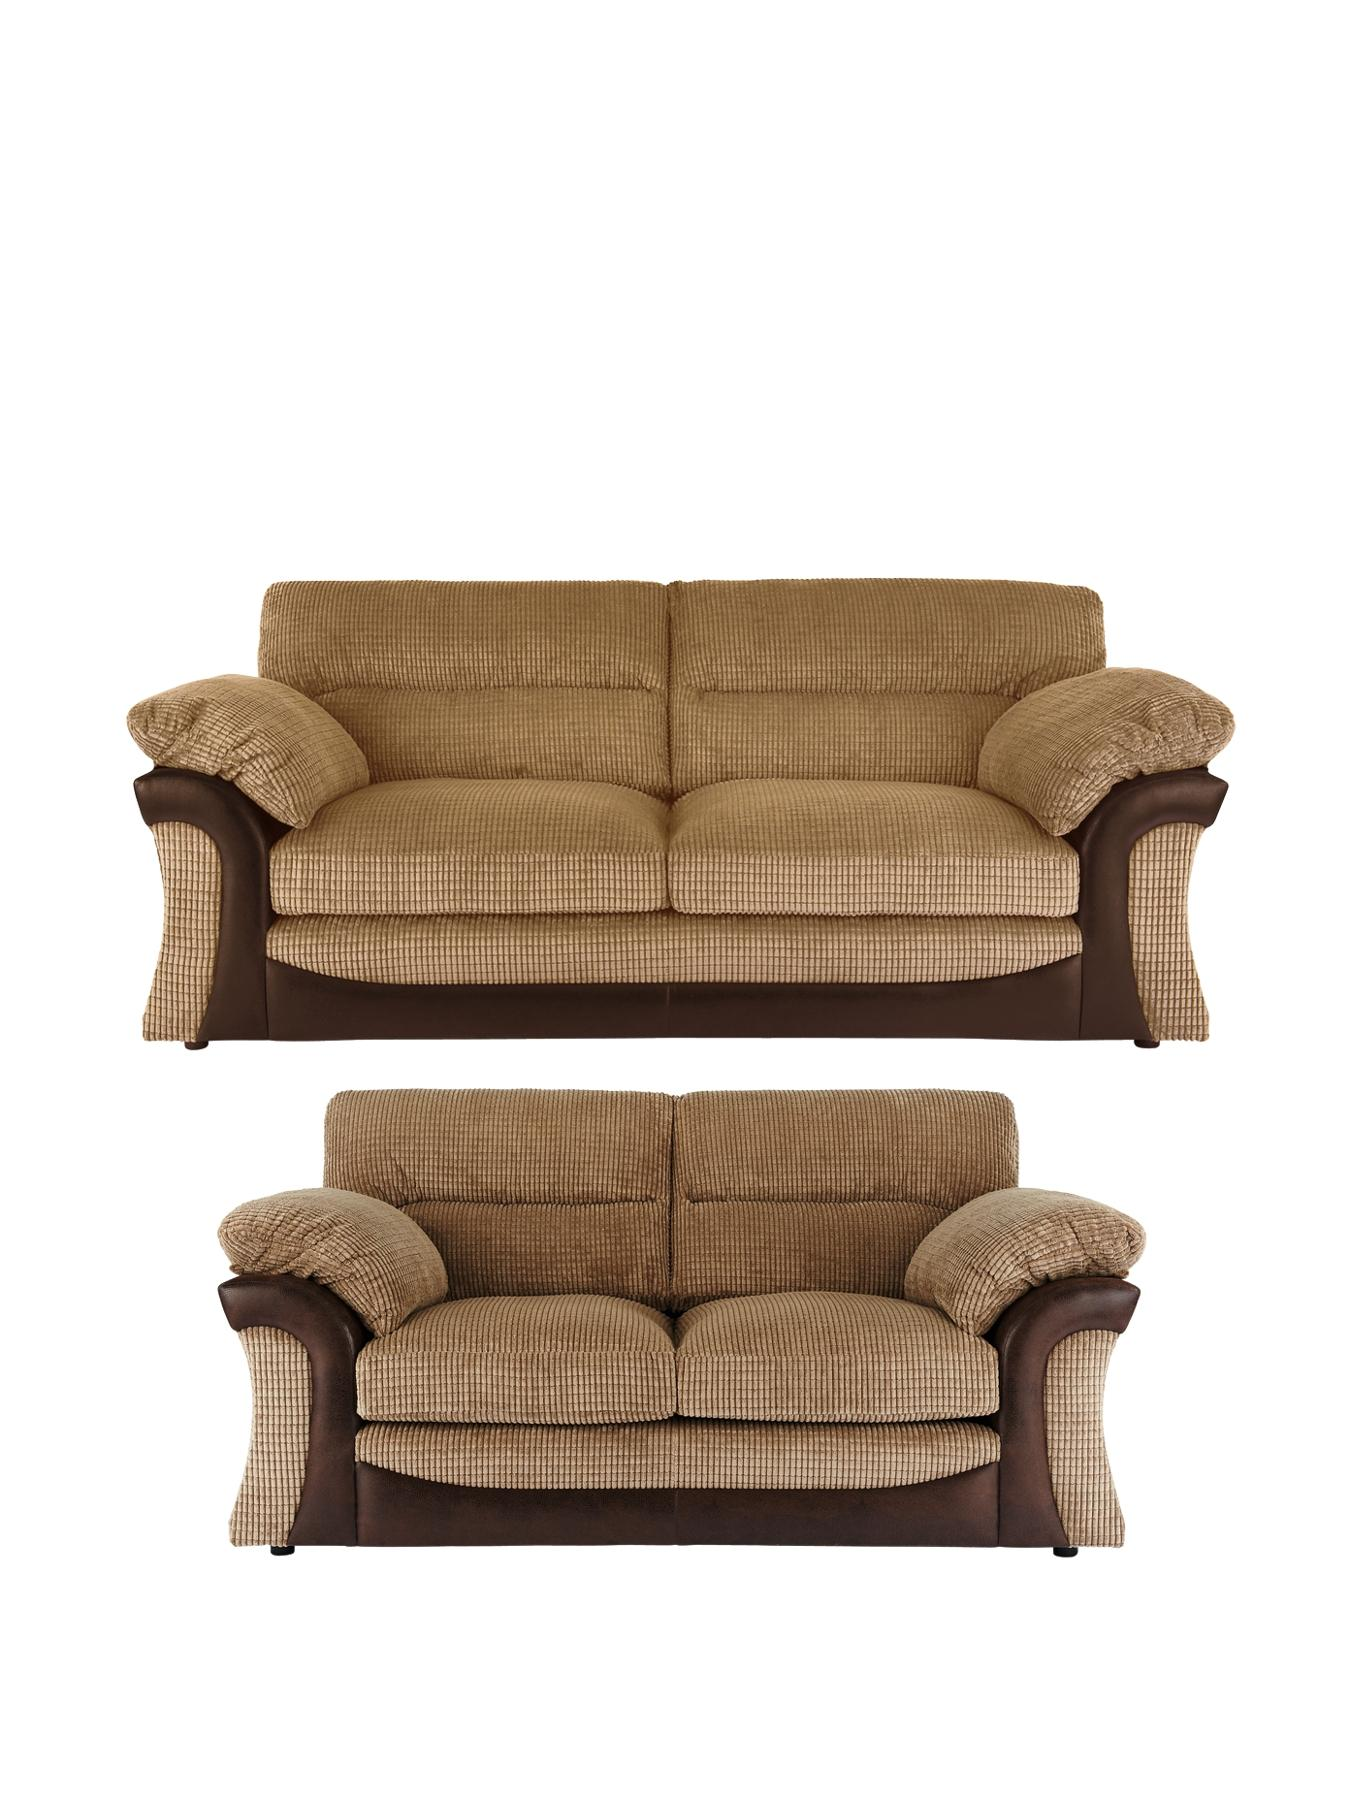 Rapide 3-Seater + 2-Seater Sofa Set - Chocolate, Chocolate,Charcoal at Very, from Littlewoods